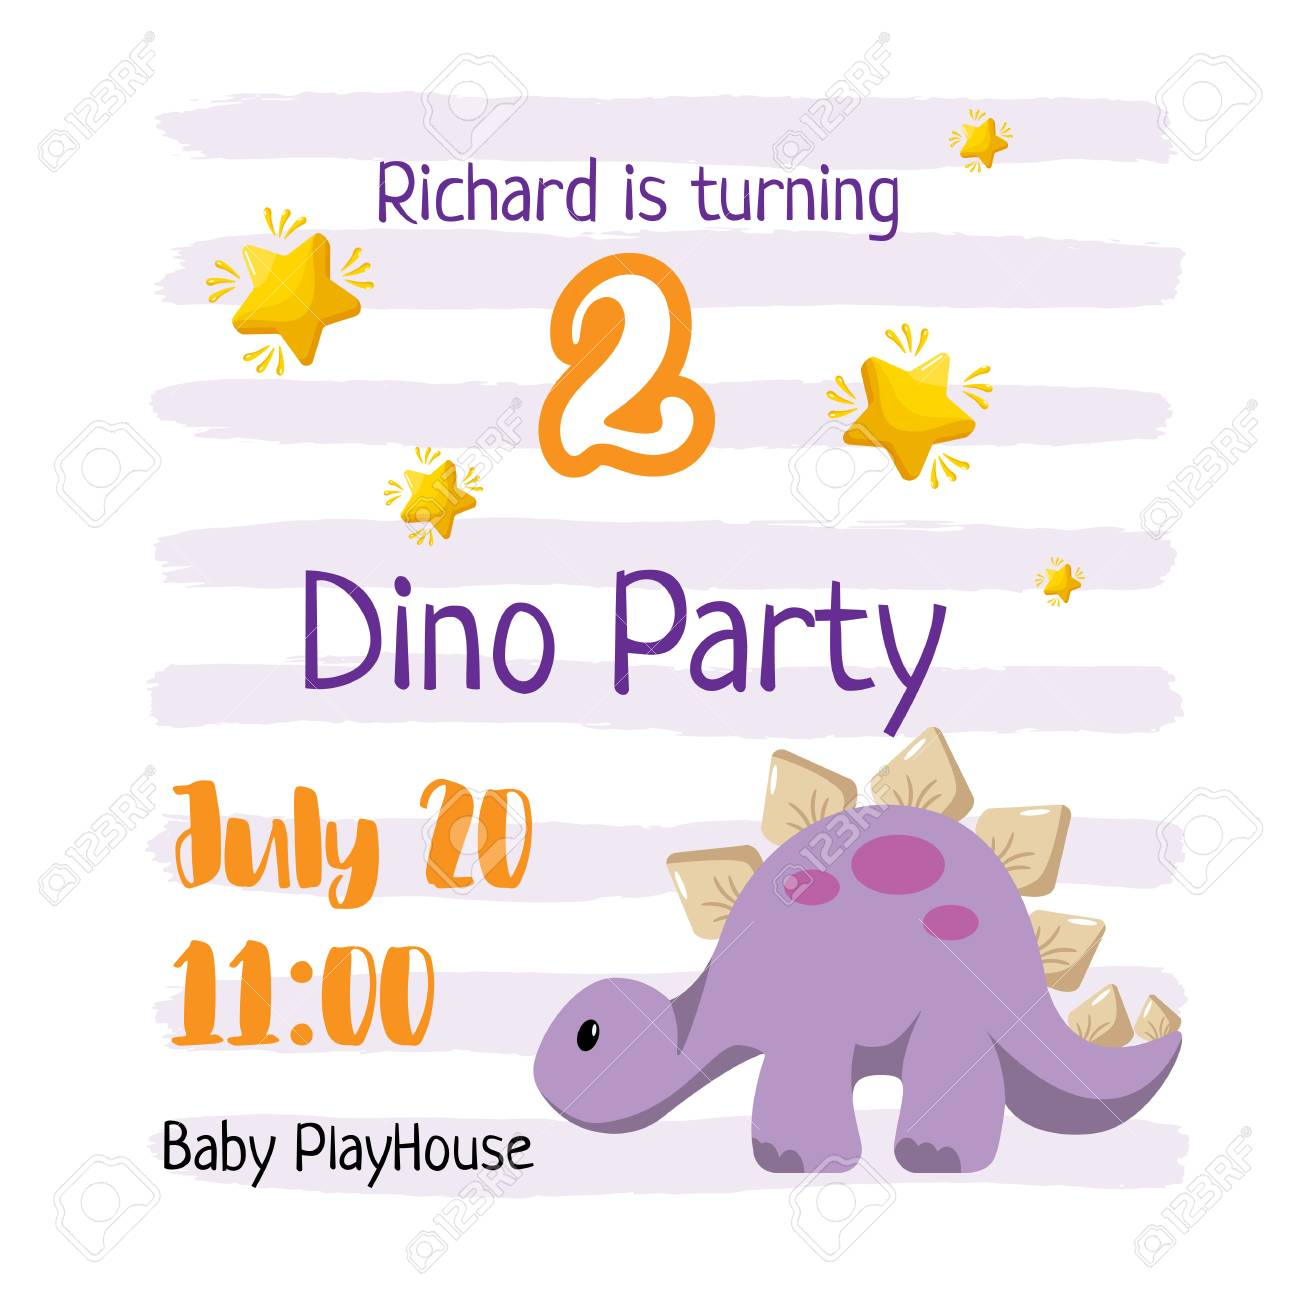 kid birthday invitation template design dino party for a baby